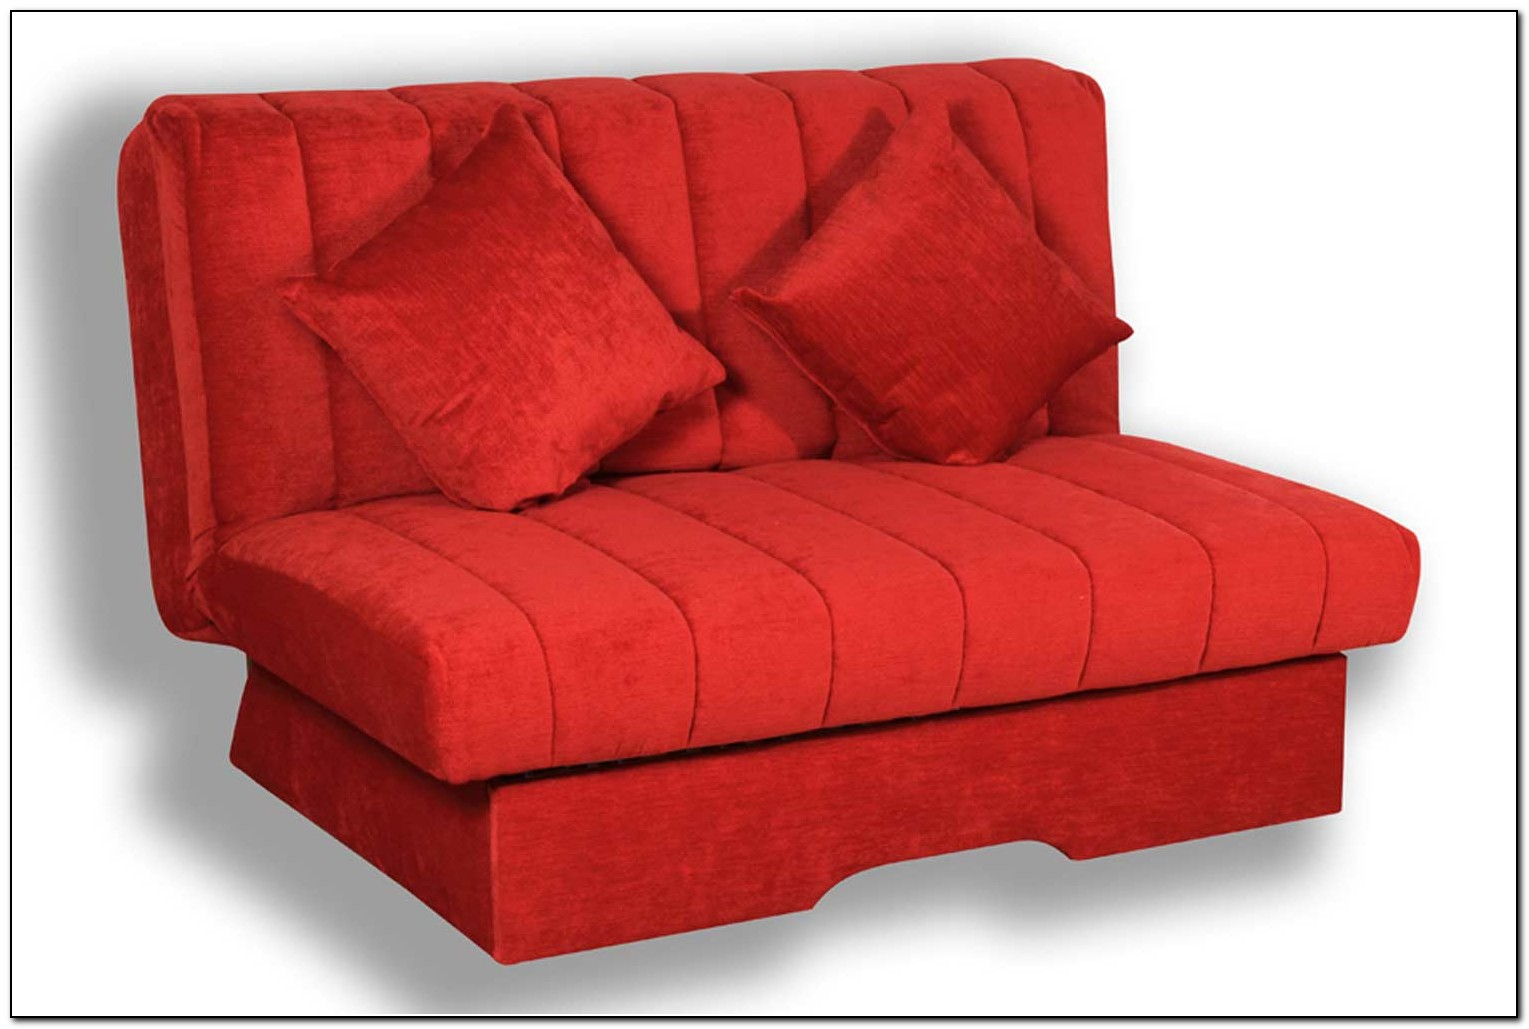 Best sofa beds 2014 uk 28 images top sleeper sofa sofa for Cheap home furniture uk